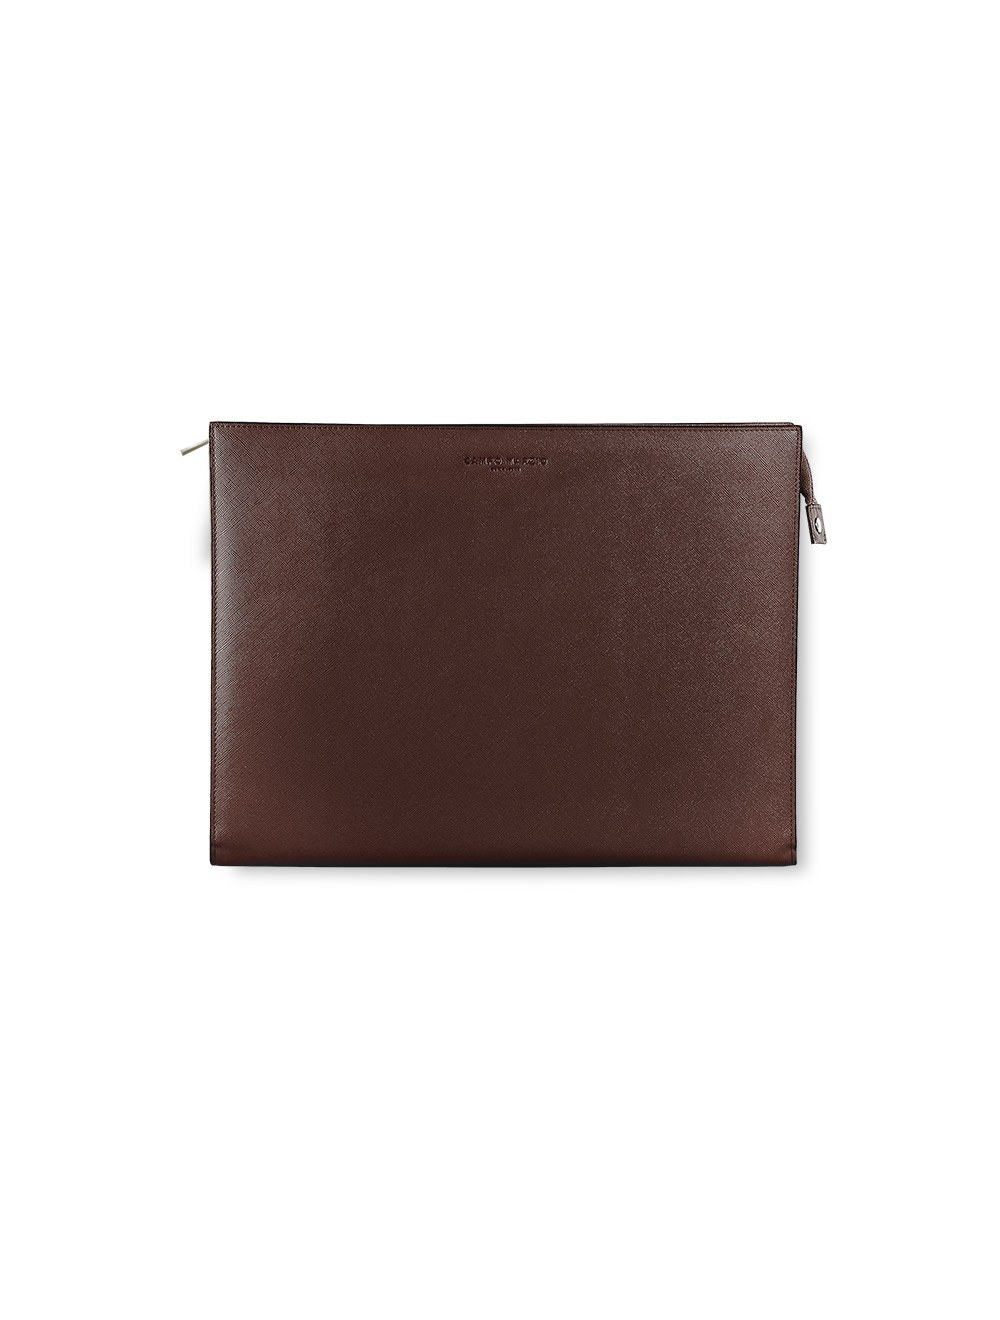 Medium Document Holder - Brown